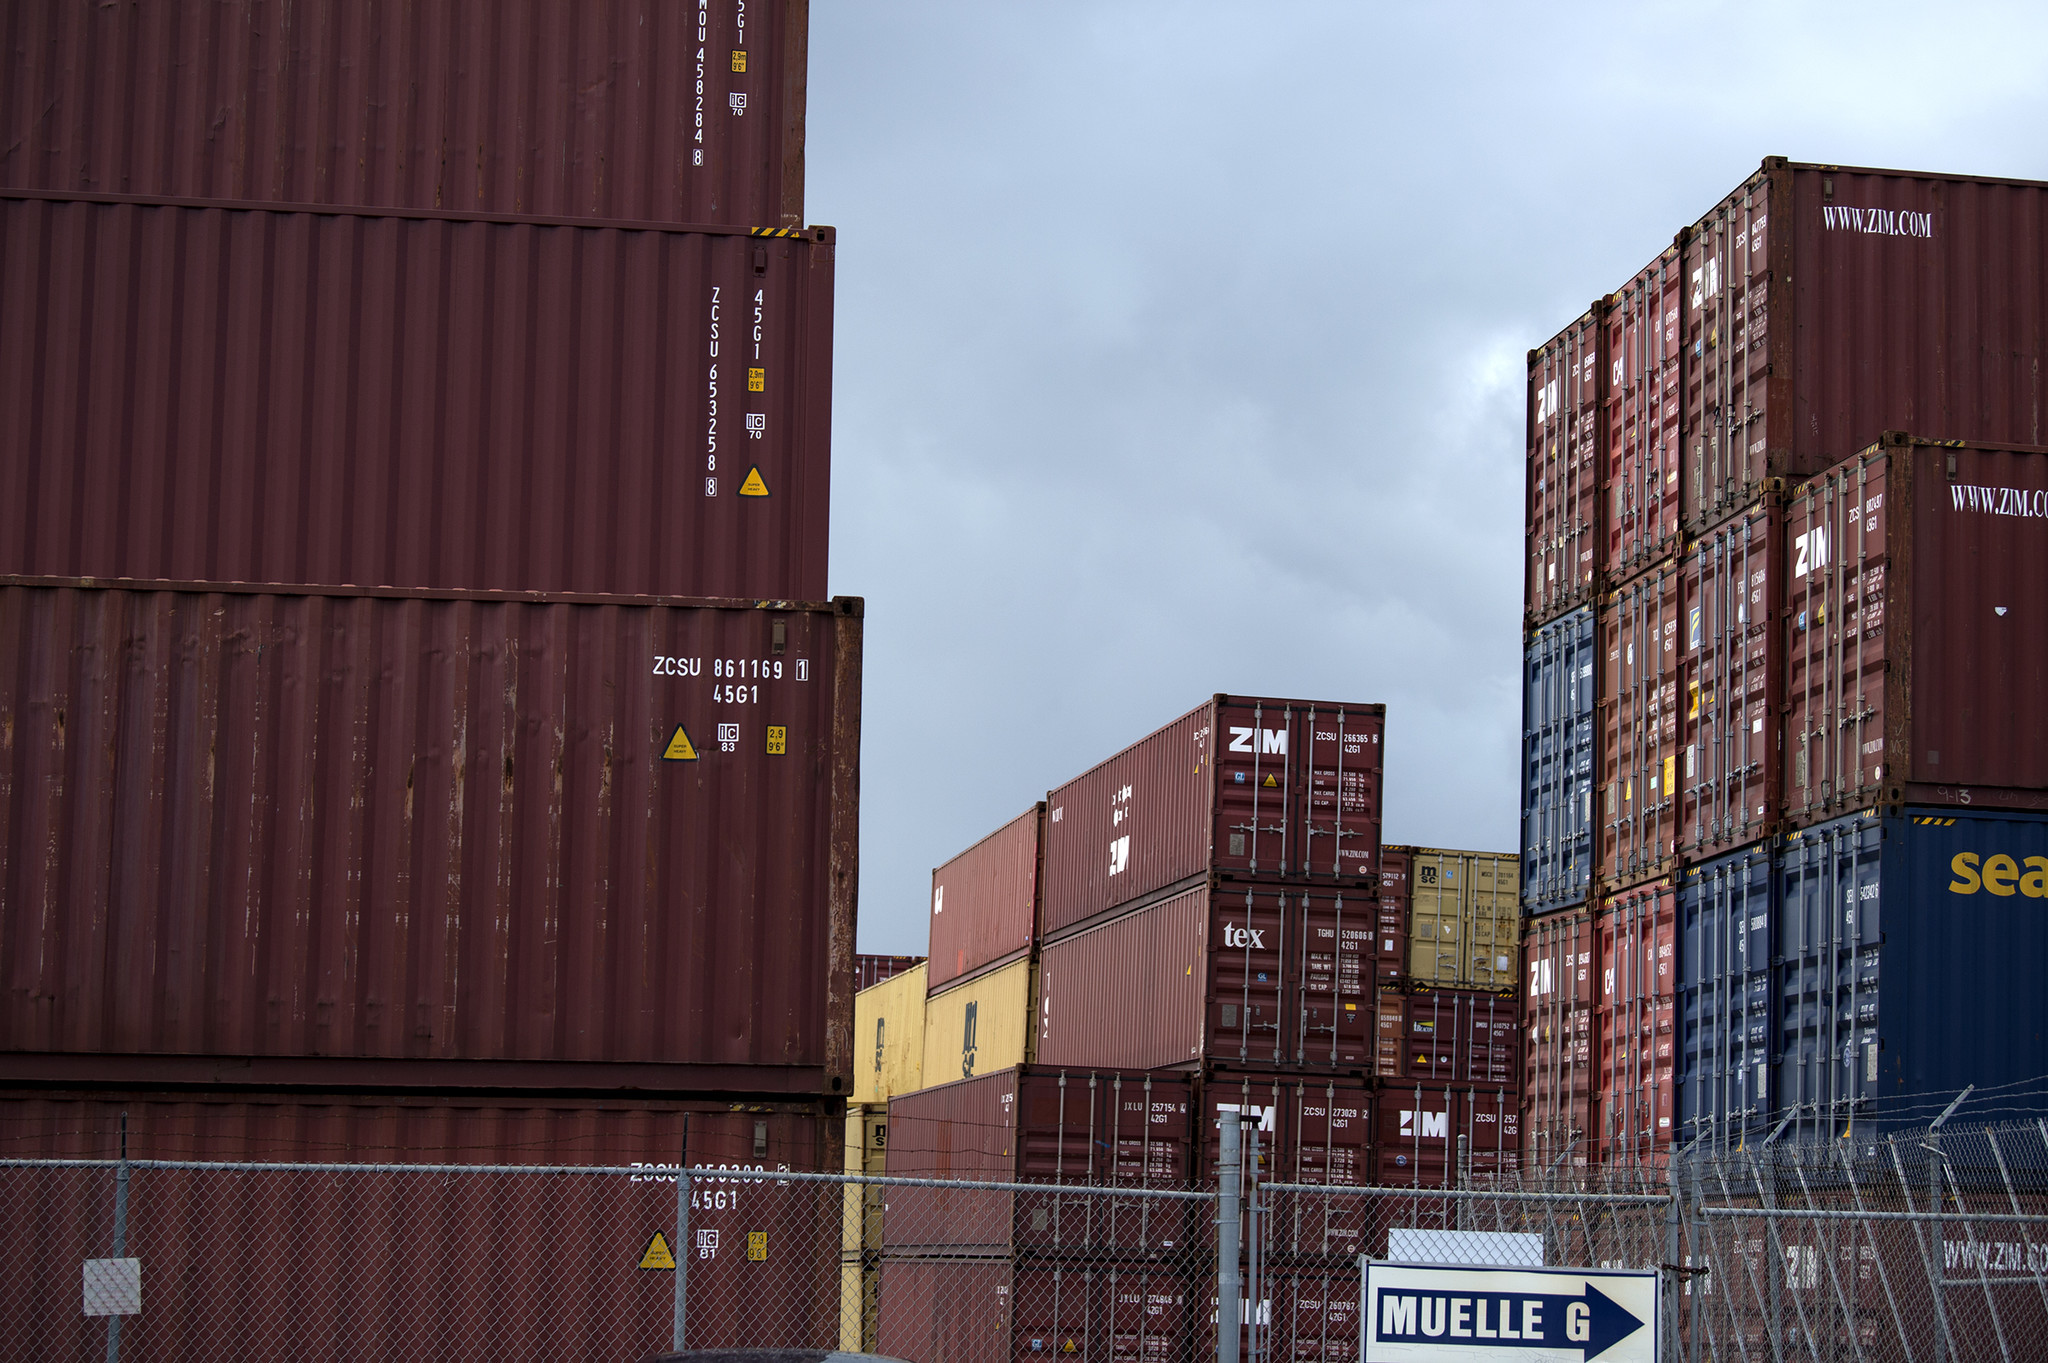 Shipping containers in the port in San Juan have been stacked twice as high as normal since relief supplies began to inundate the capital city port. The shipping container sent by Elliot Matos arrived to San Juan and then to Caguas on schedule.